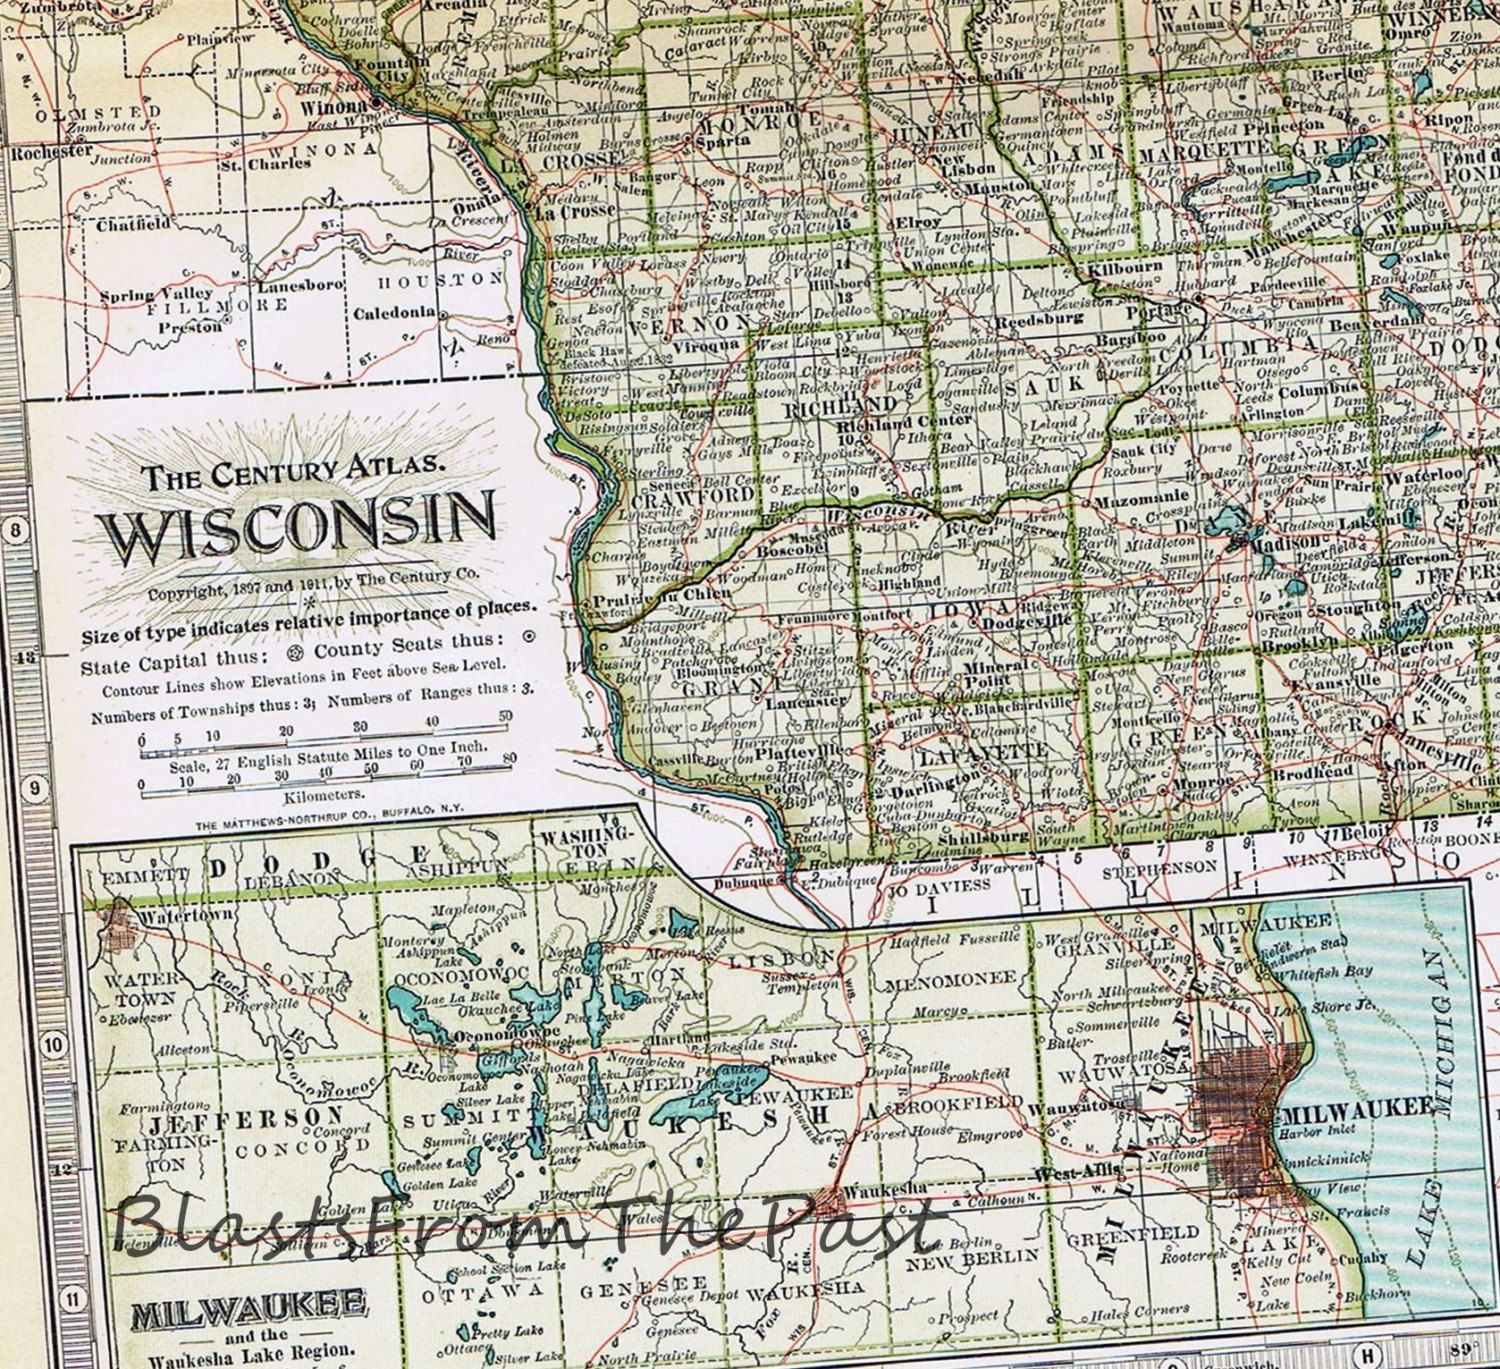 1911 Antique MAP of WISCONSIN Authentic Large Scale Century Atlas